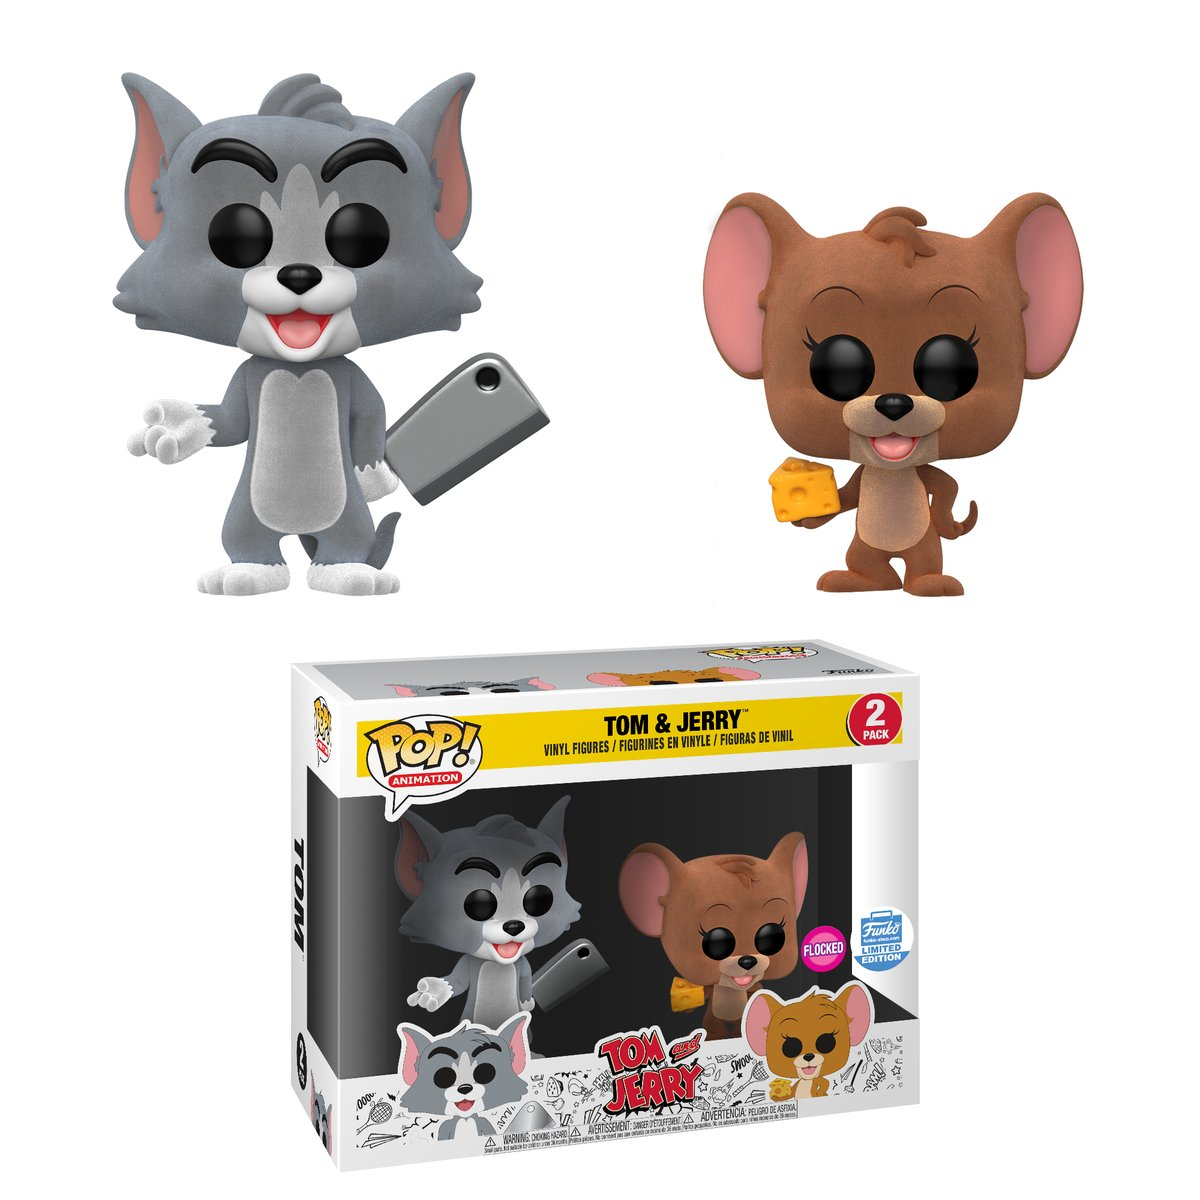 RT & follow @OriginalFunko for the chance to win a Funko Shop exclusive FLOCKED Tom and Jerry Pop! 2-pack!